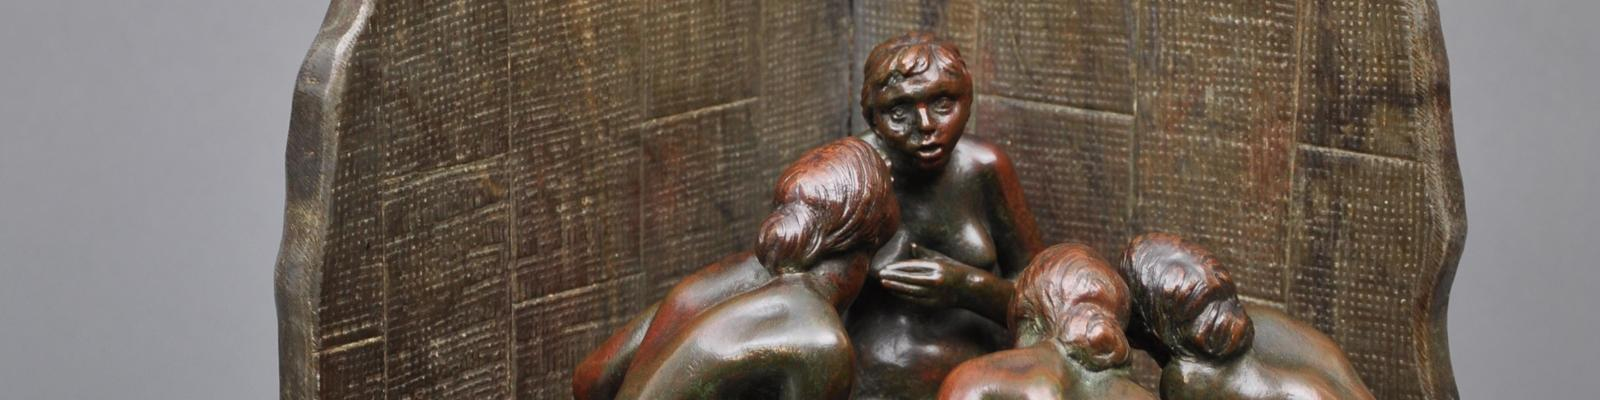 Camille Claudel's collection